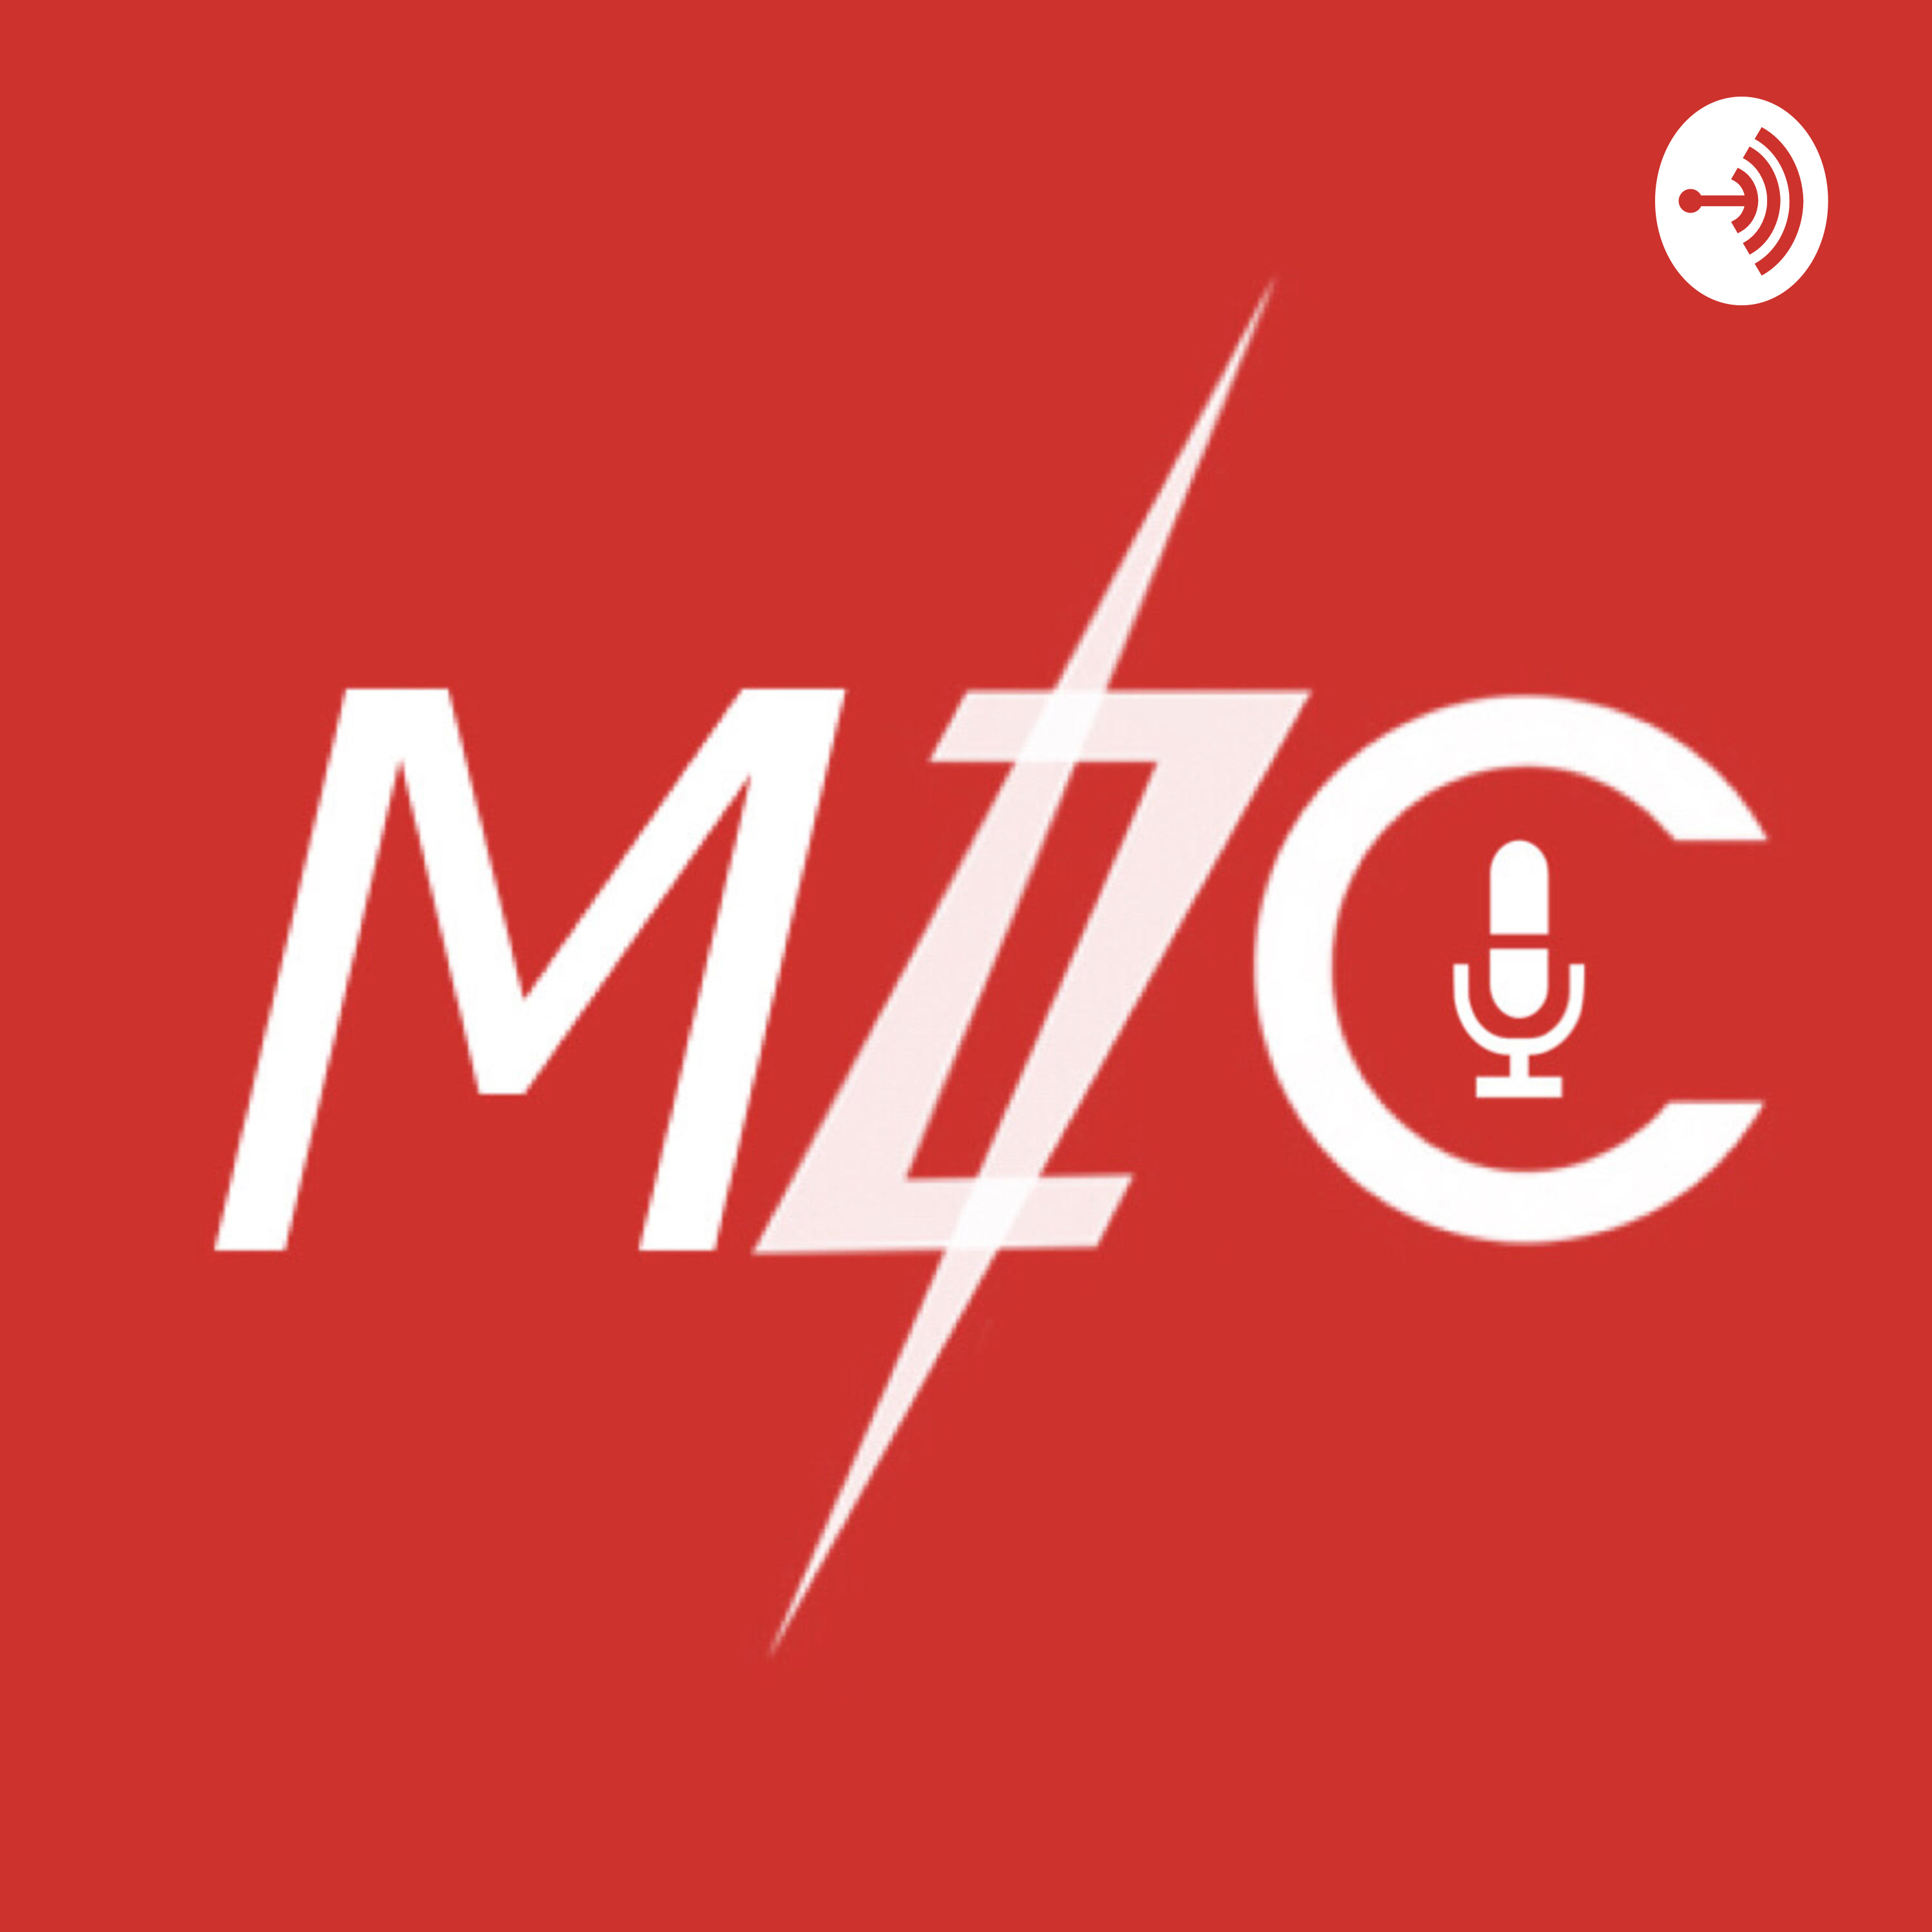 How To Fast Track Progress | The 7mlc Podcast Episode #5